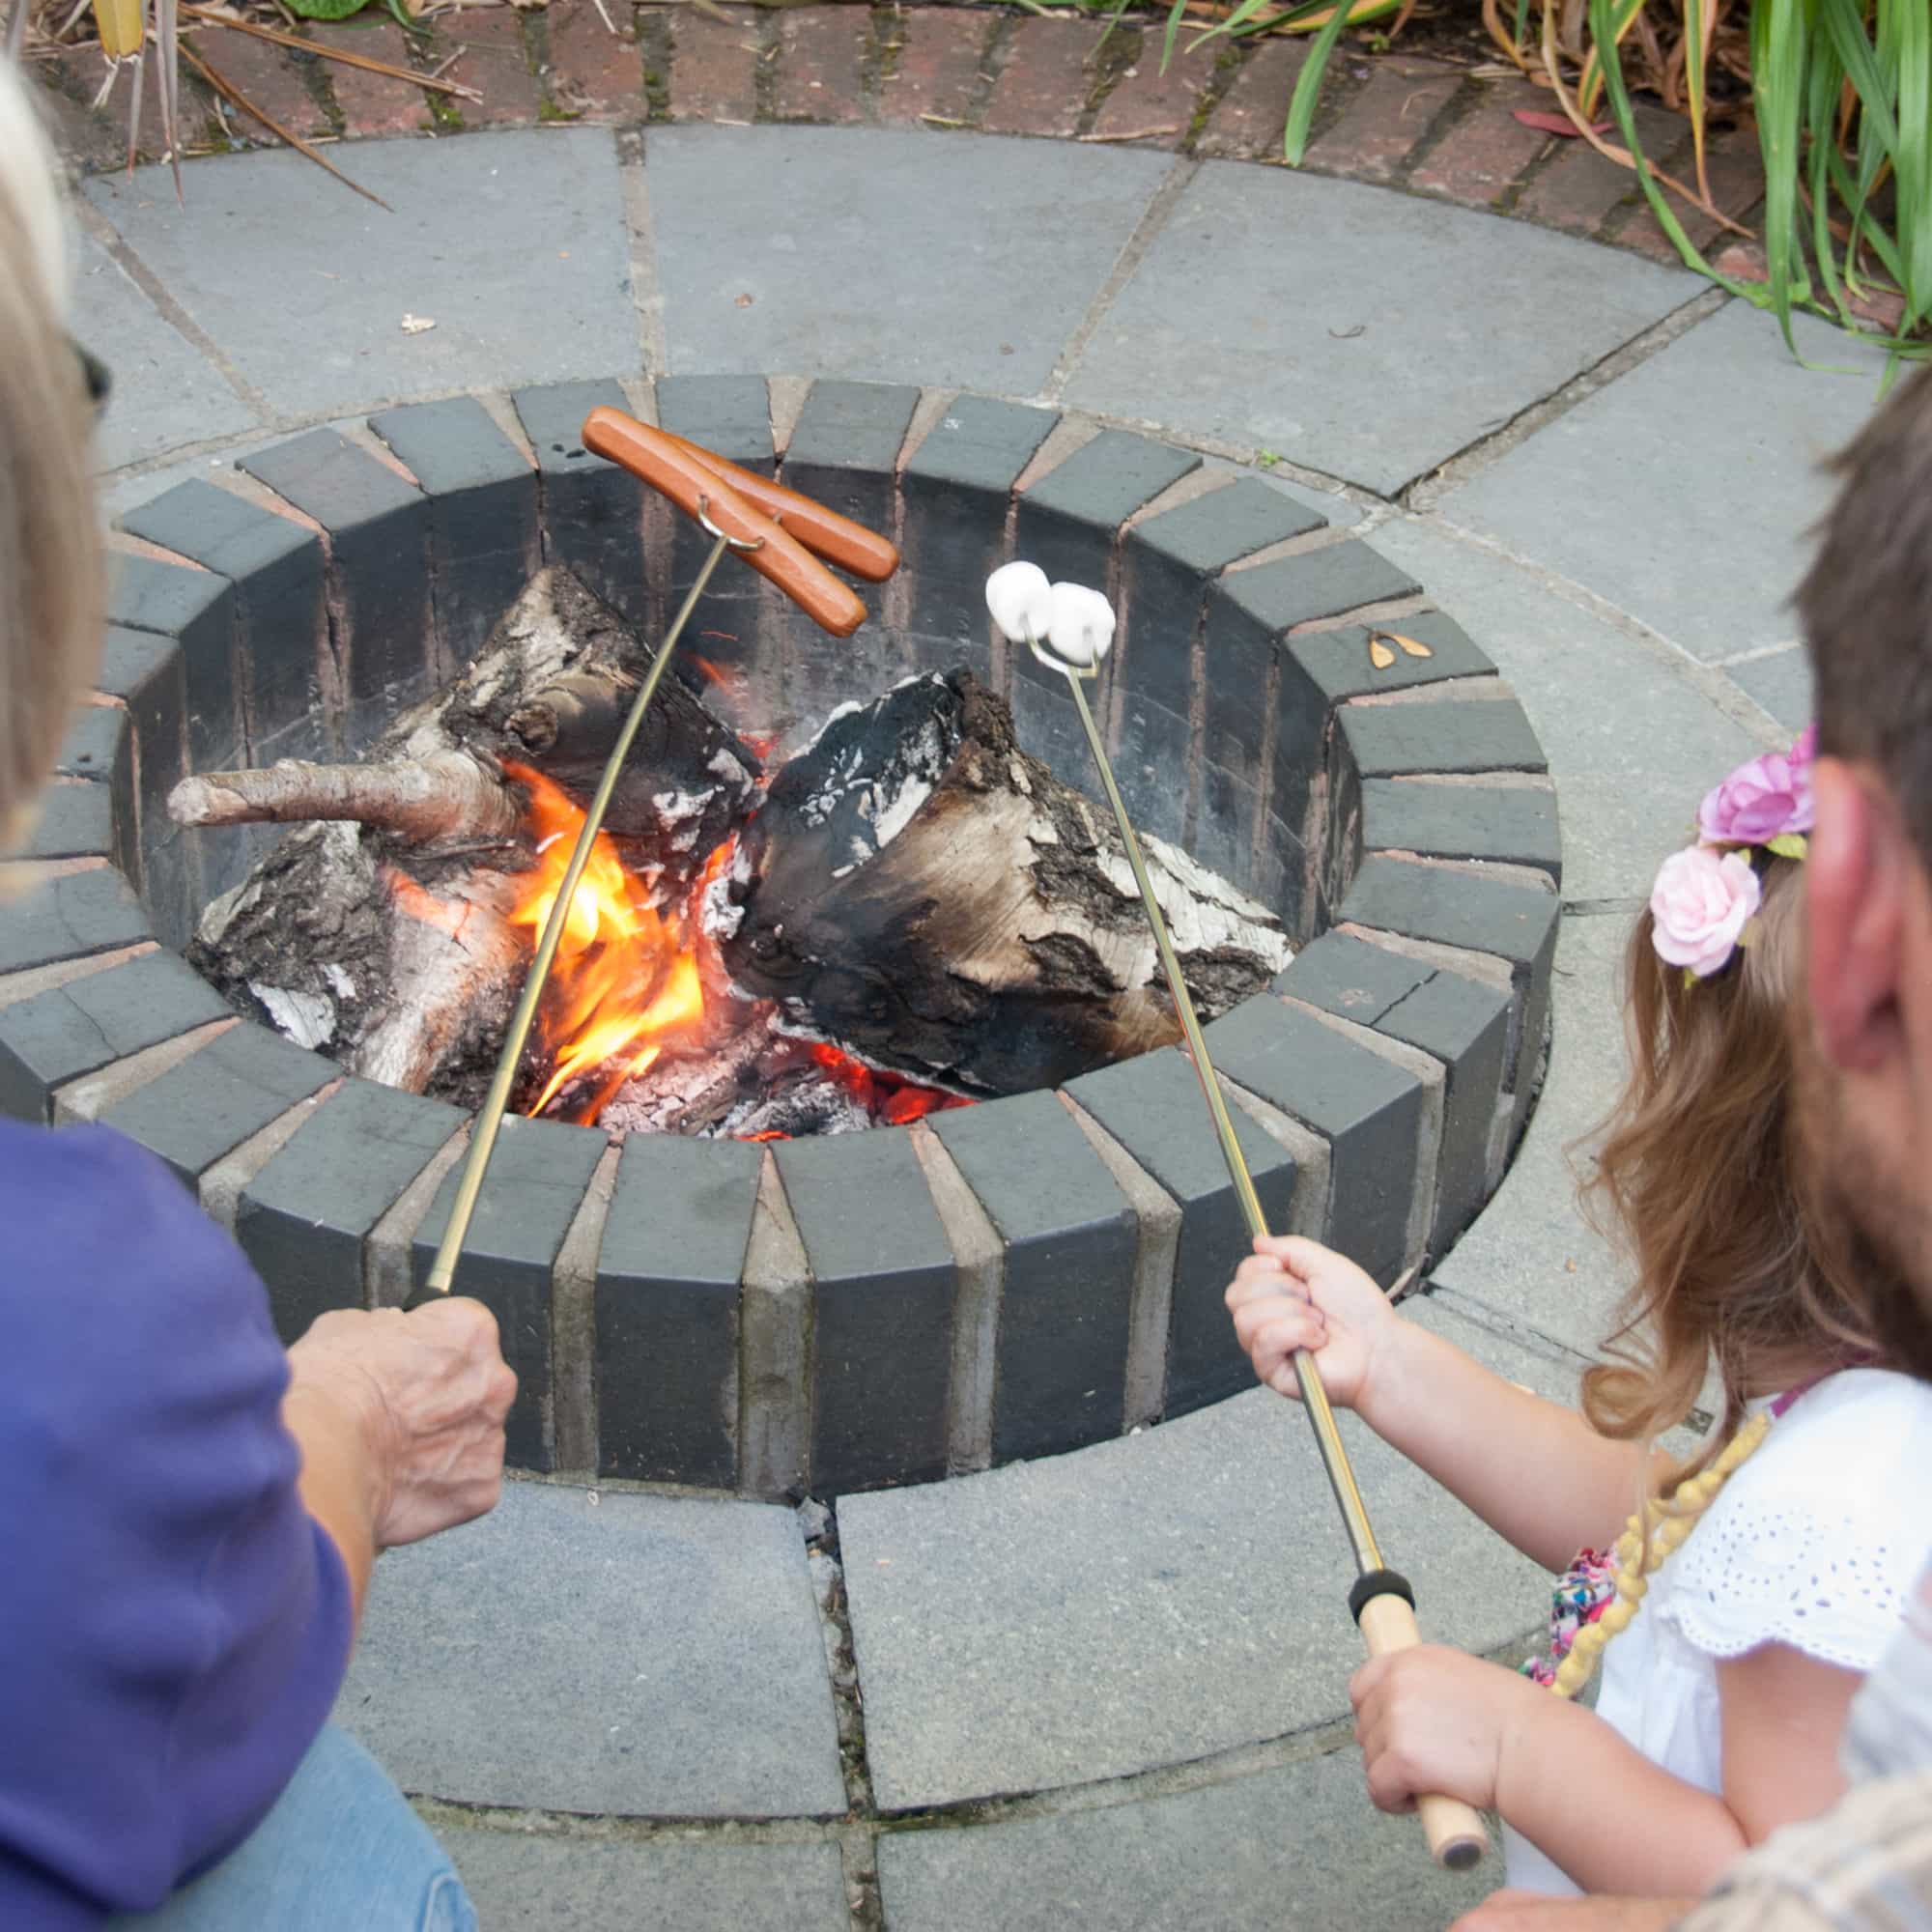 Best Marshmallow Roasting Sticks For Camping